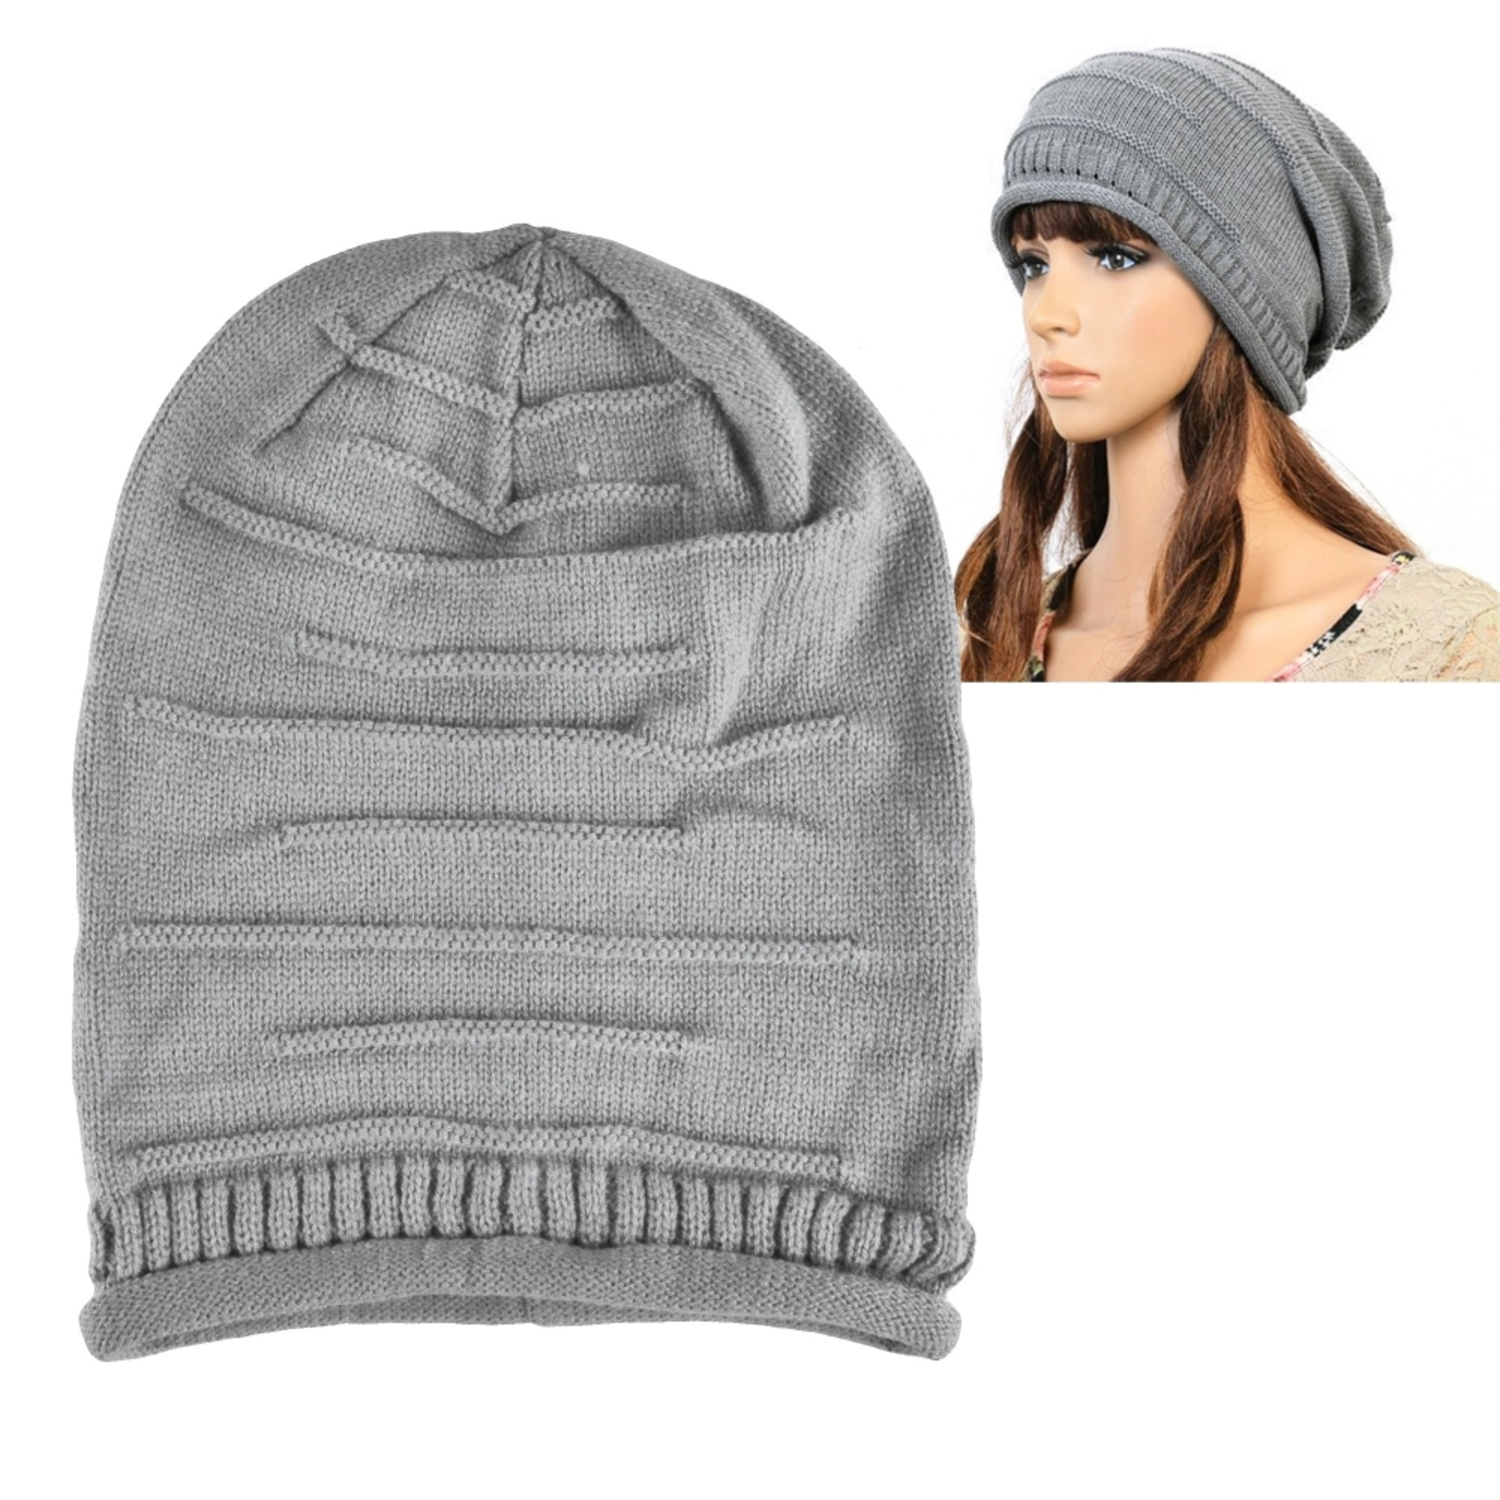 Zodaca Gray Solid Color Fashion Unisex Knit Baggy Beanie Hat Winter Warm Oversized Ski Cap